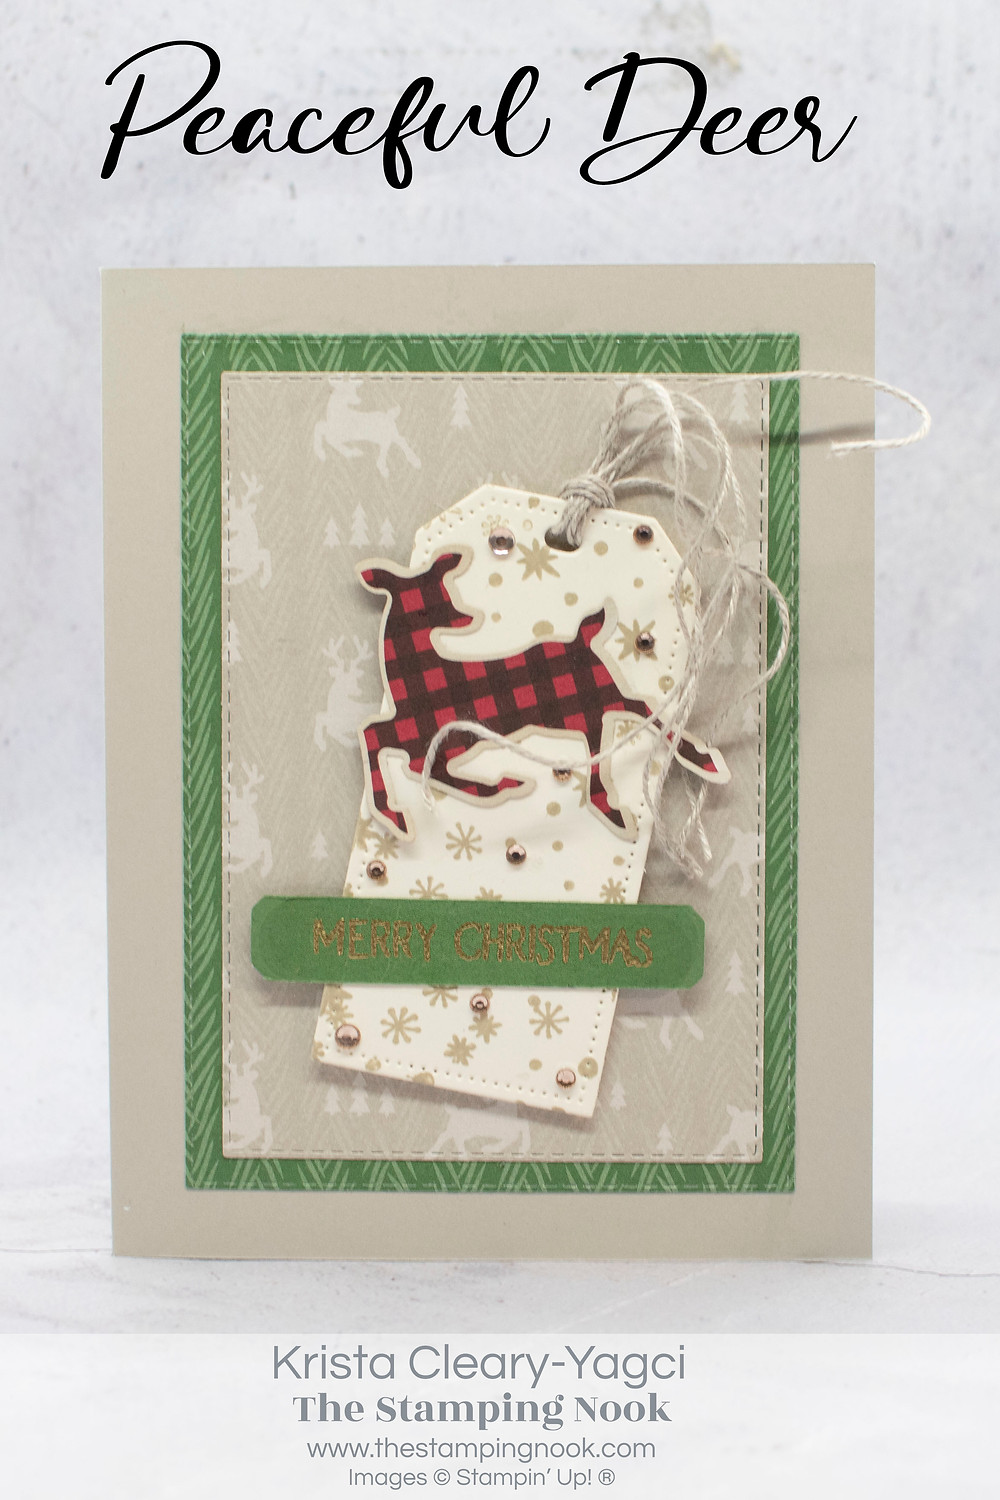 Stampin' Up! Card Ideas - Stampin Up Card Ideas - Stampin Up 2021-2022 - Stampin Up Holiday Cards - Stampin Up Christmas Cards - Stampin Up Peaceful Deer Cards - Peaceful Deer Cards Stampin Up - Peaceful Deer Stamp Set - Peaceful Deer Card Ideas - Greeting Cards - Handmade Cards - Christmas Cards - Handmade Christmas Cards - Christmas 2021 - DIY Cards - The Stamping Nook - Krista Yagci - Stampin Up Demonstrator - Stampin Up New Jersey - Stampin Up Pennsylvania - Sale-A-Bration - Stampin Up Sale - Peaceful Prints DSP - Peaceful Prints Designer Series Paper - Peaceful Prints Patterned Paper